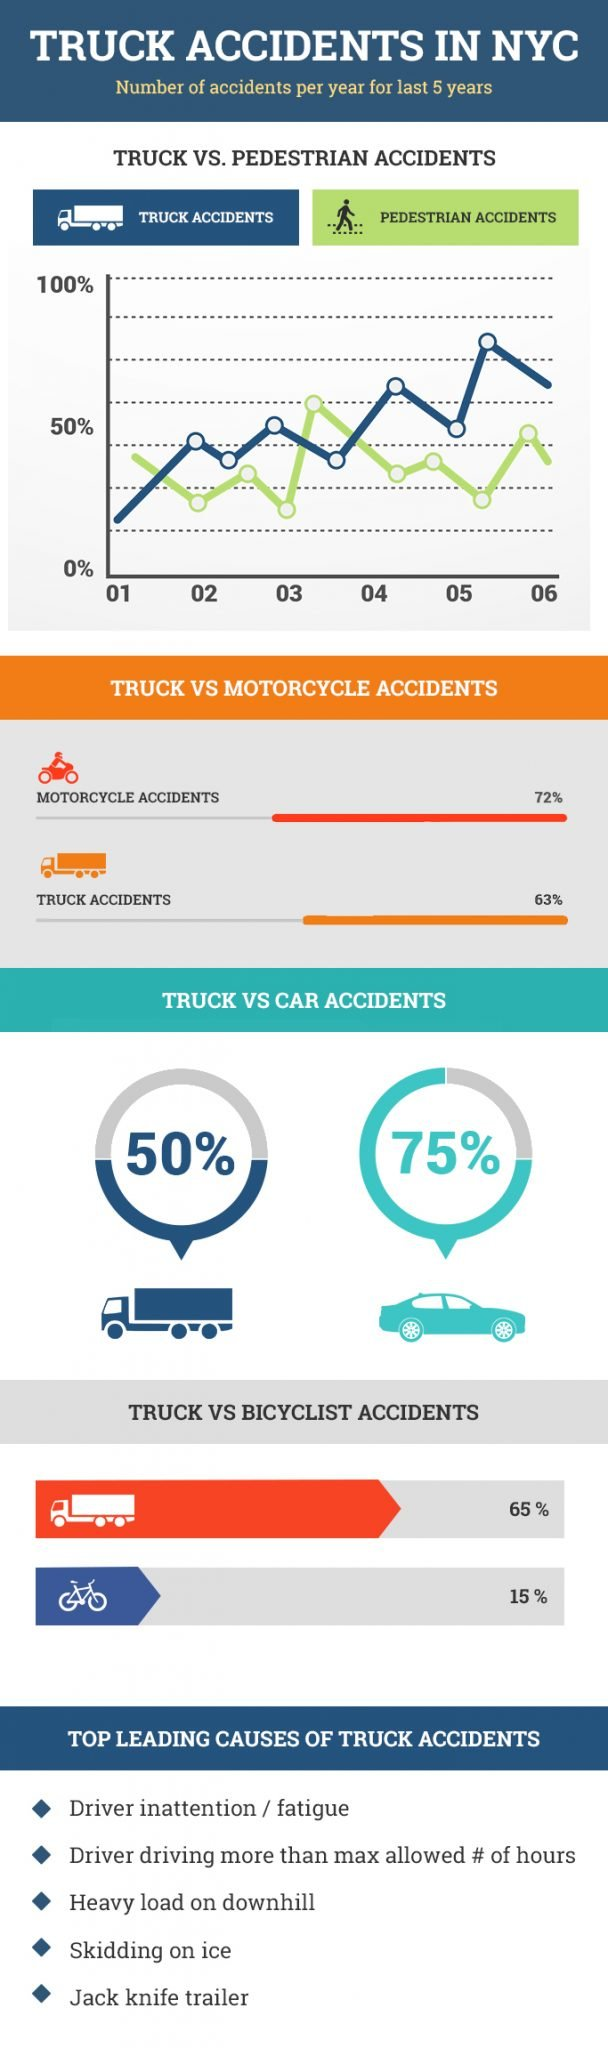 Truck accidents infographic